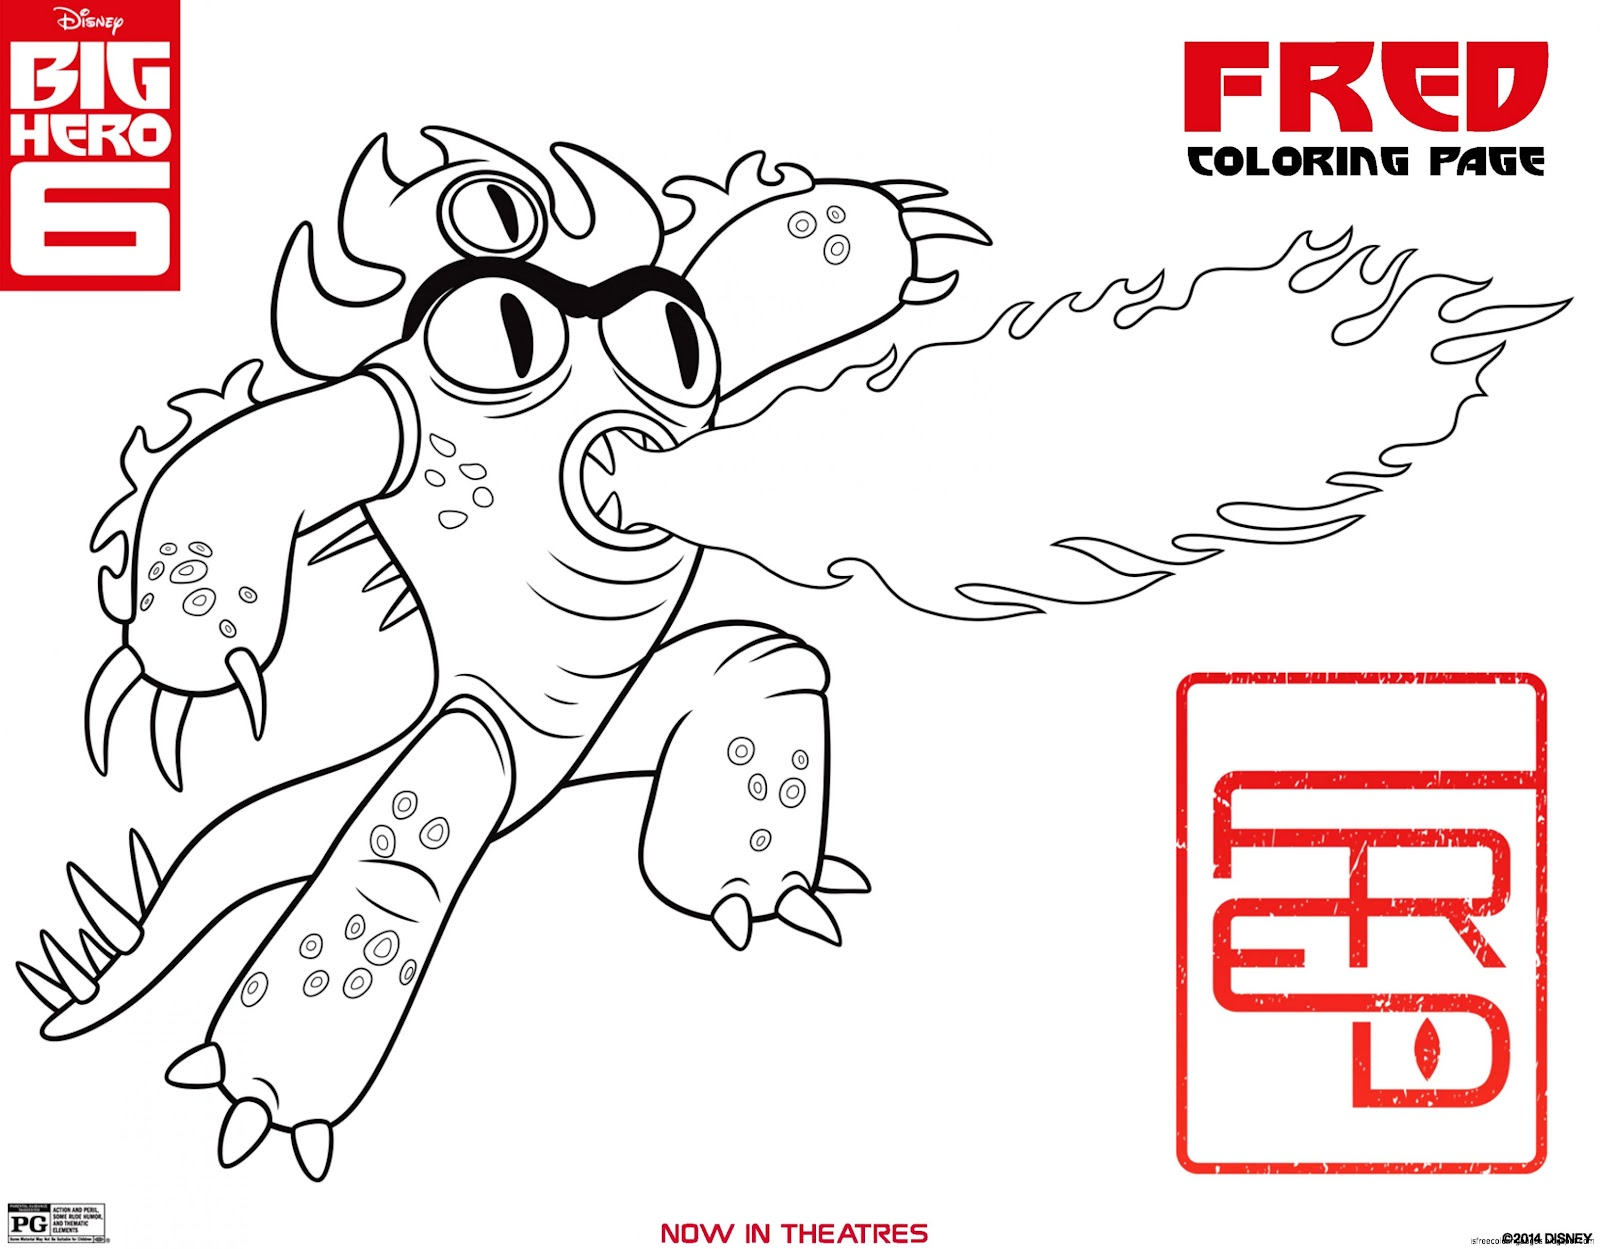 View Original Size Big Hero 6 Coloring Pages Image Source From This